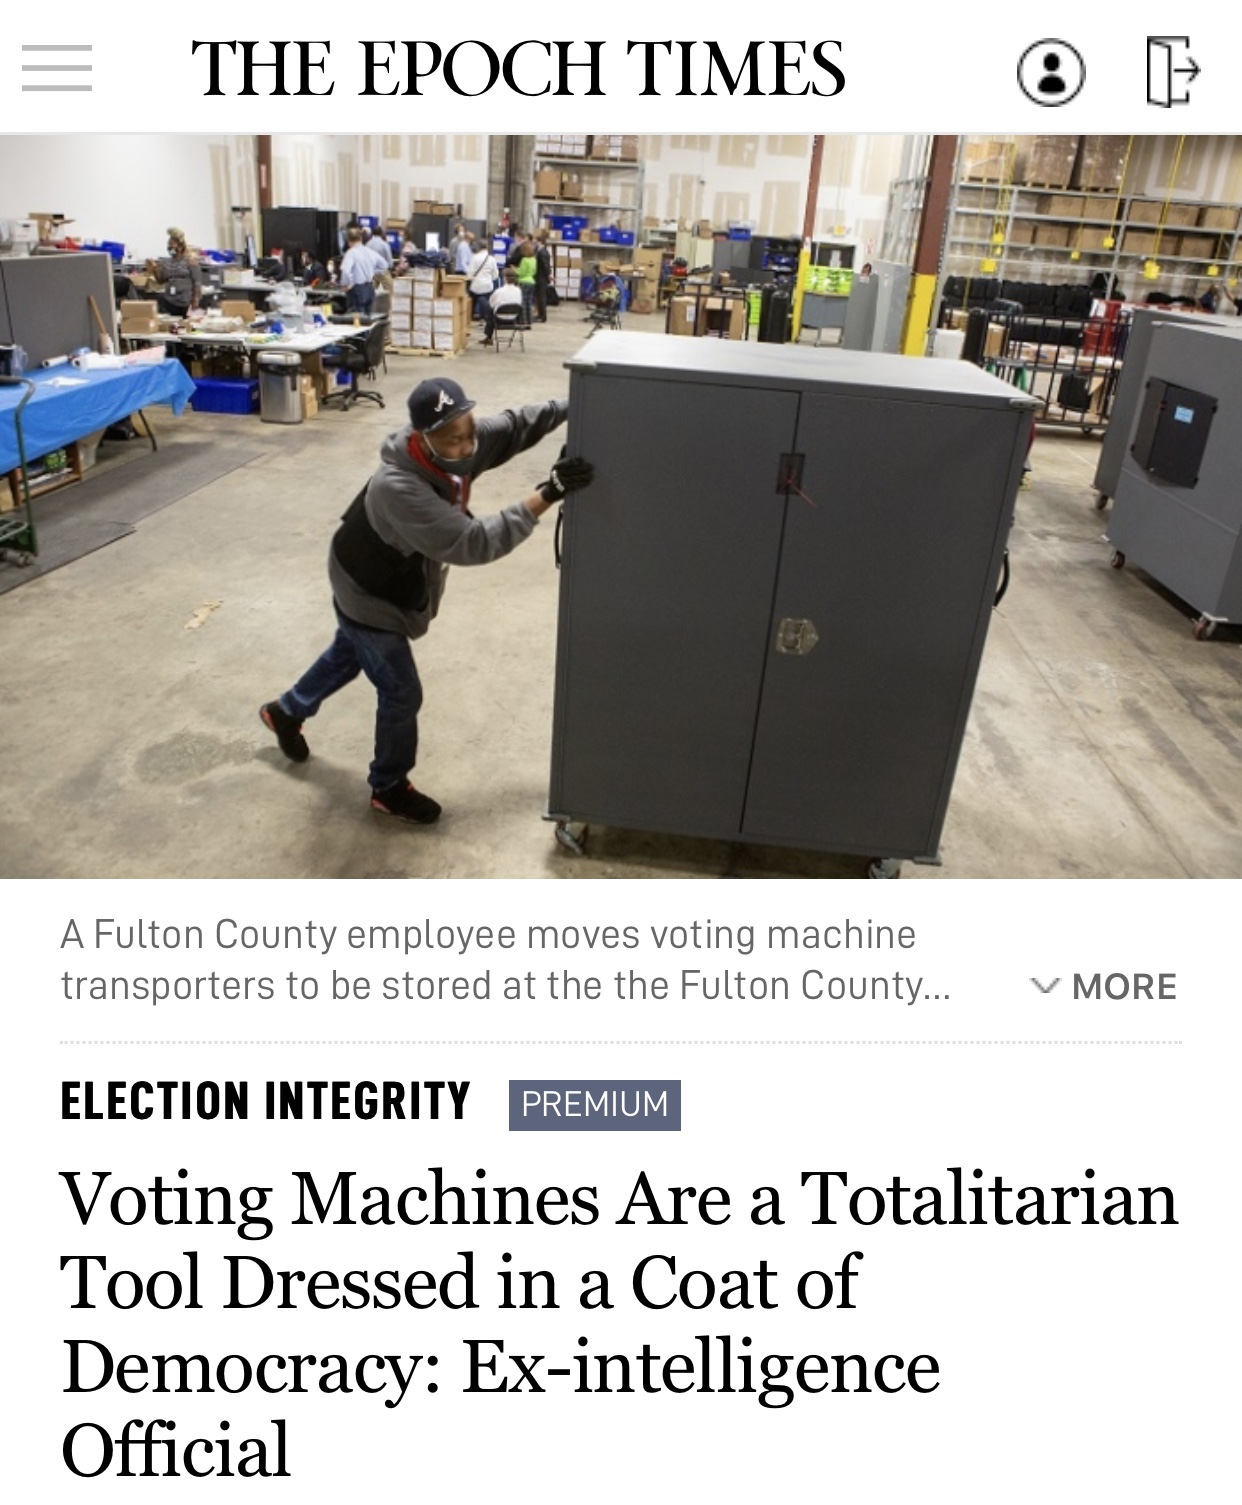 Voting Machines Are a Totalitarian Tool Dressed in a Coat of Democracy: Ex-intelligence Official